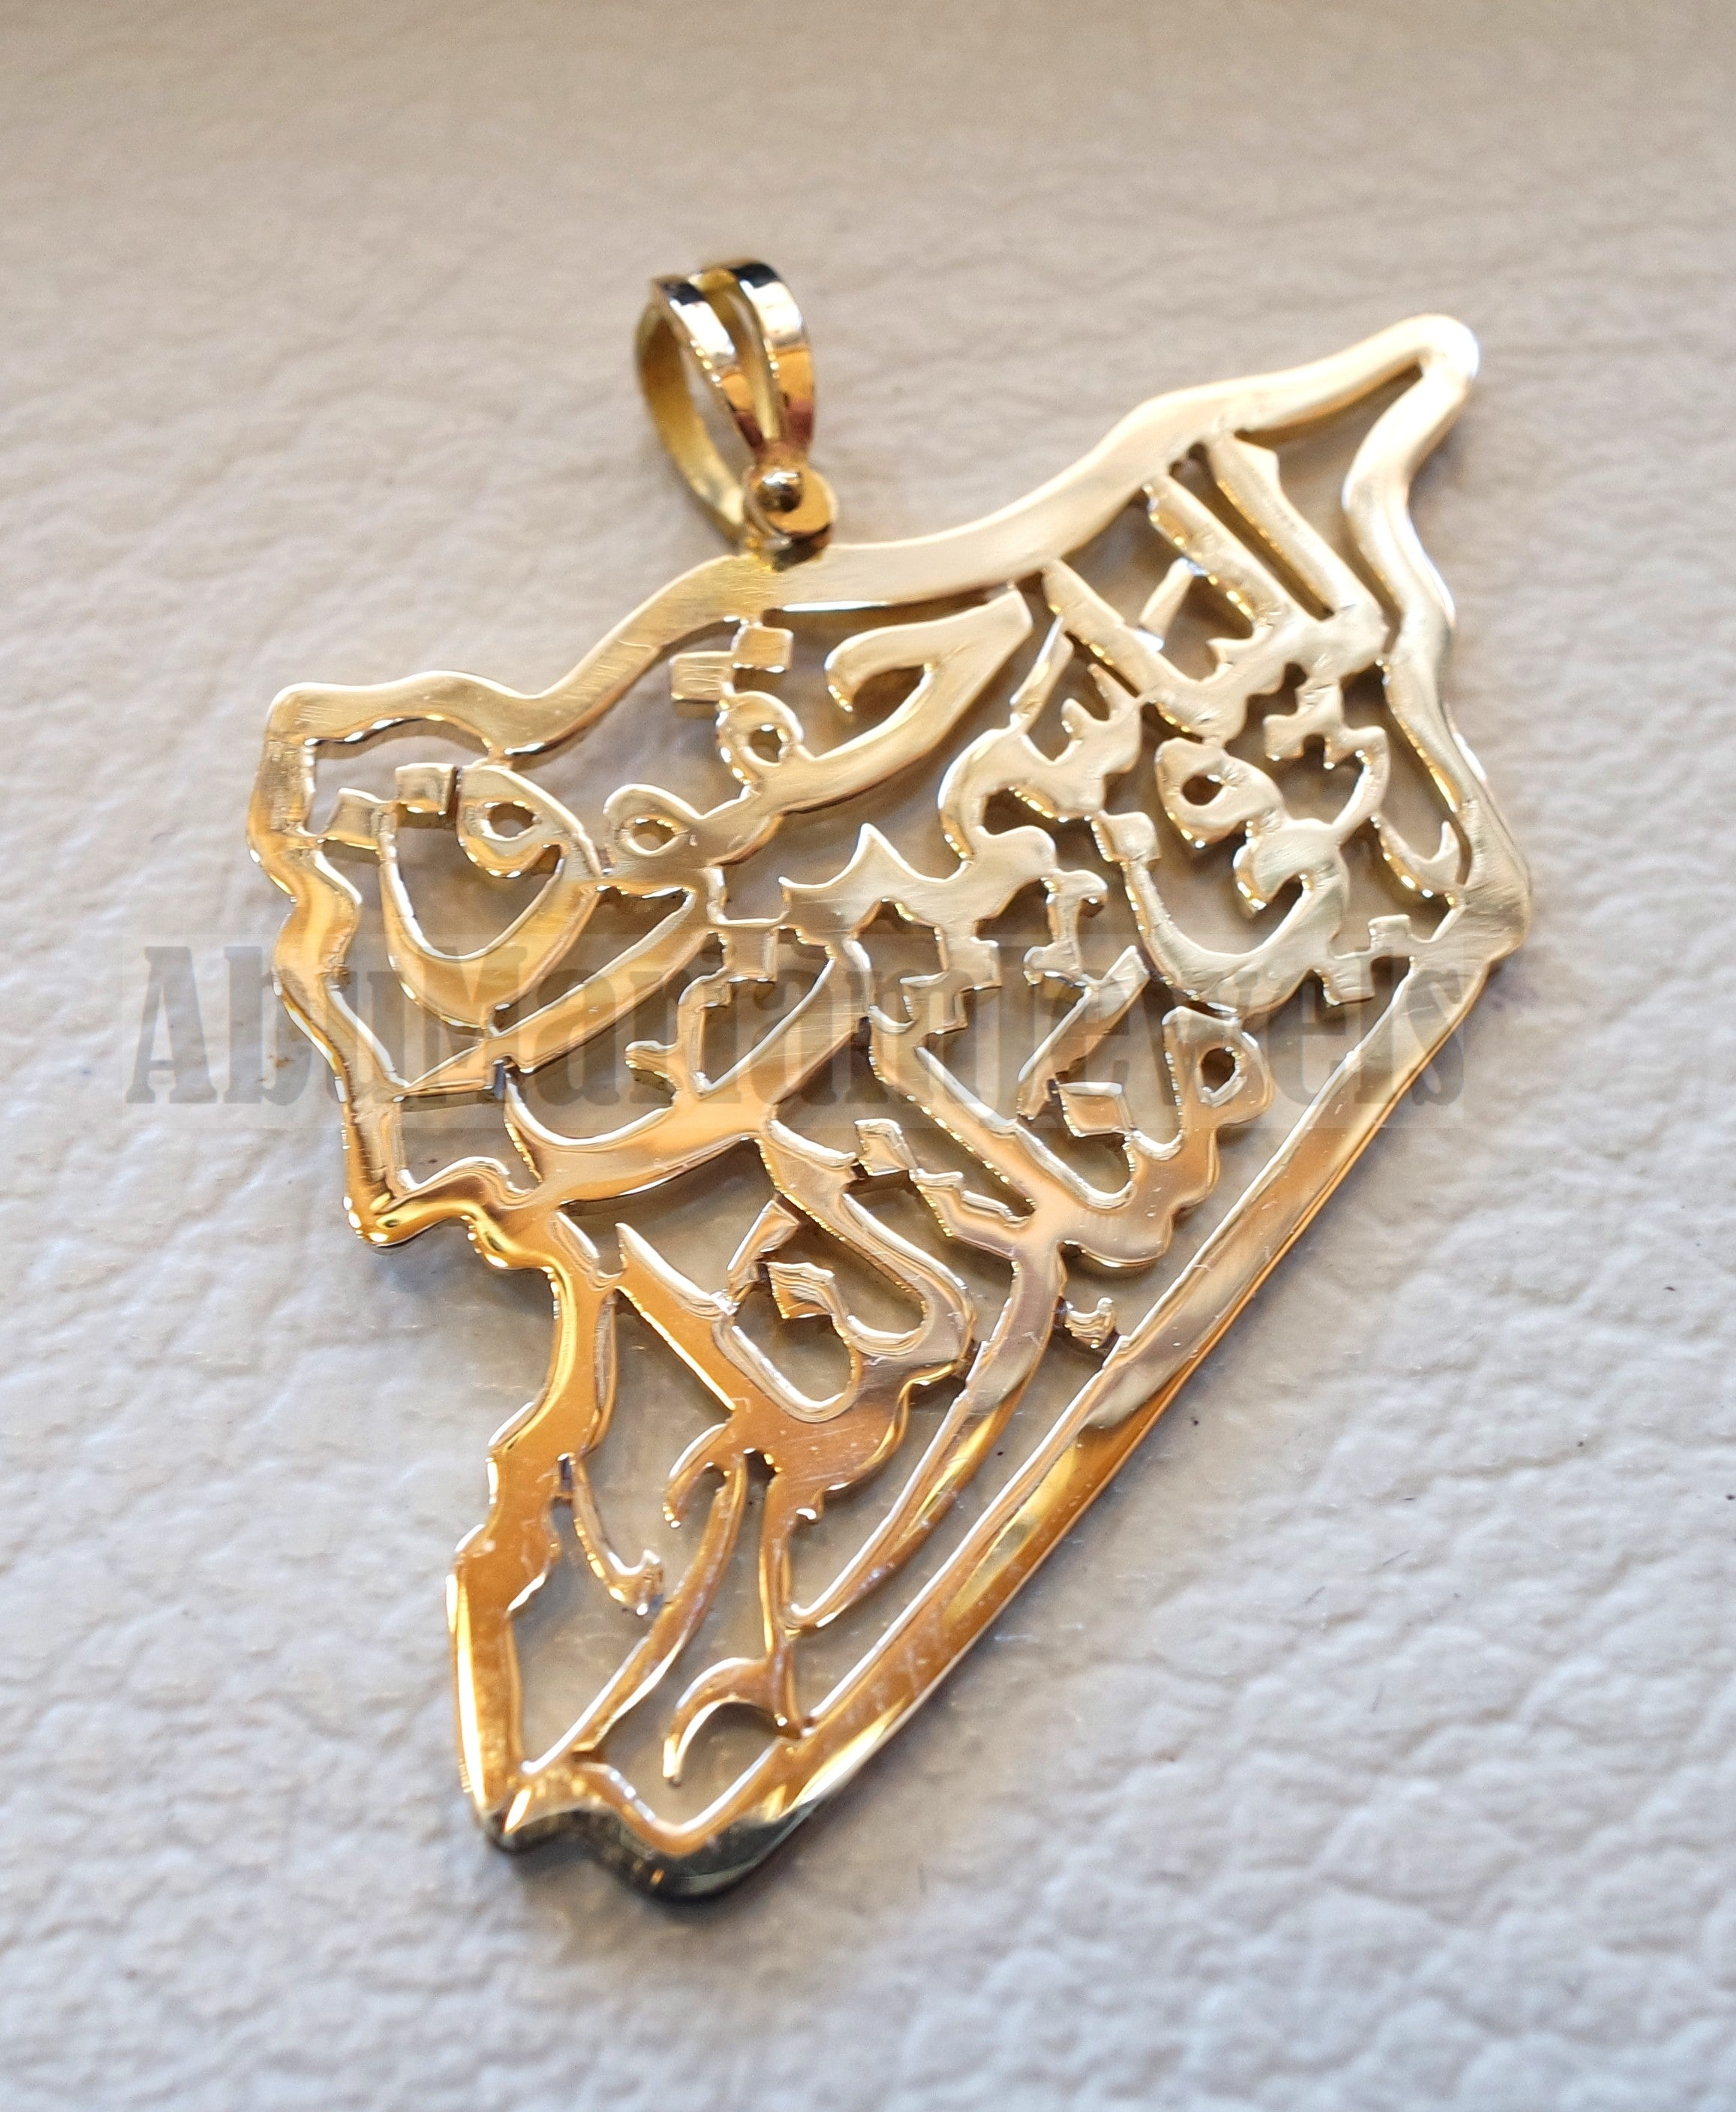 Syria map pendant with famous poem verse sterling 18k gold high quality jewelry arabic fast shipping خارطه سوريا